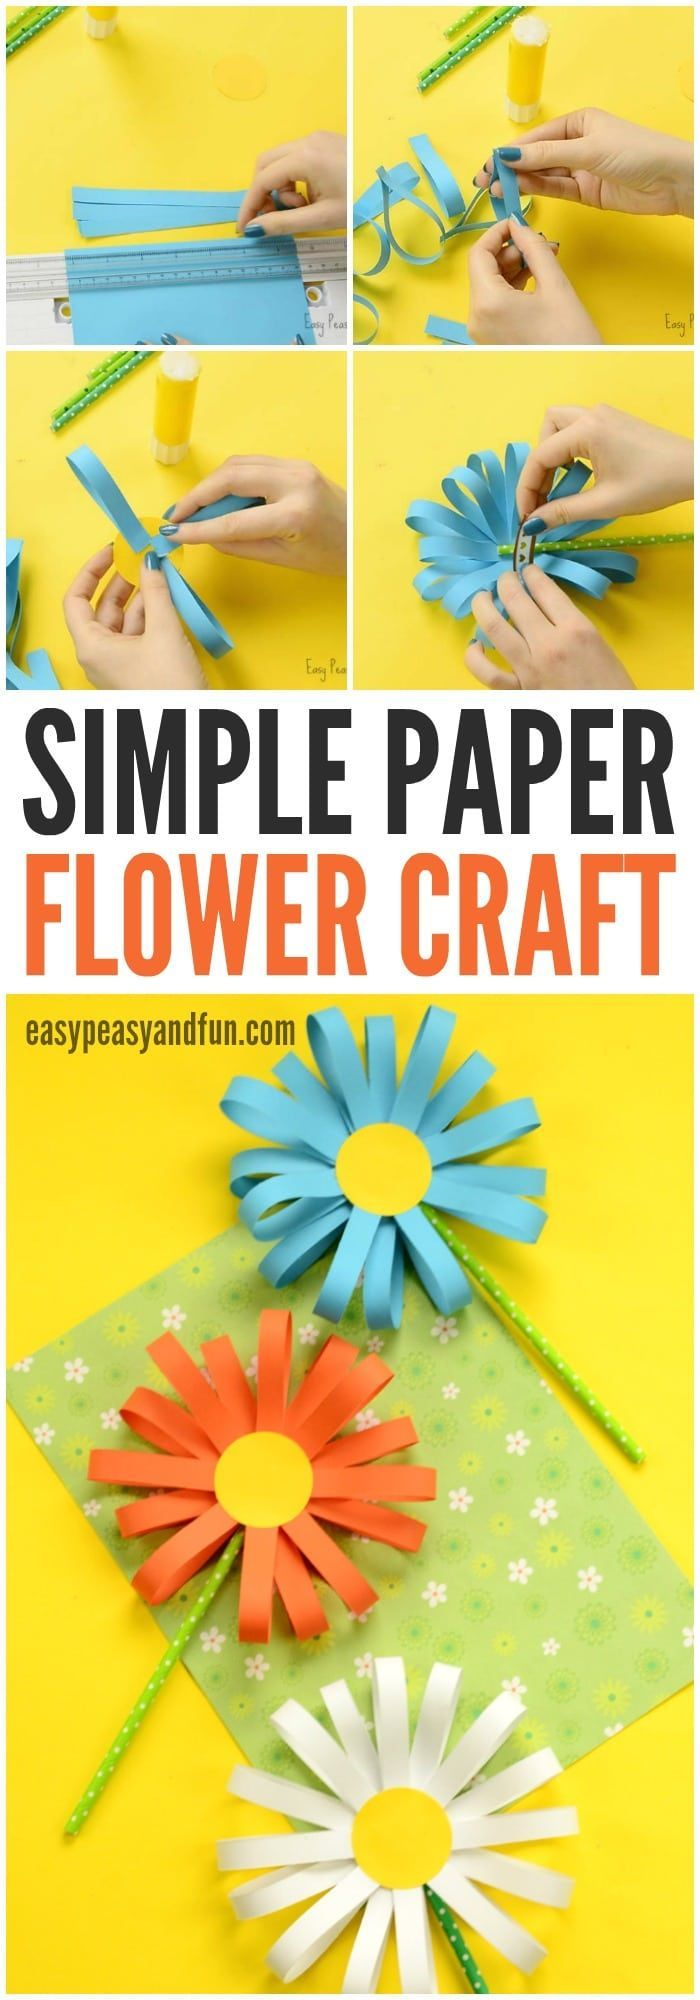 https://www.easypeasyandfun.com/paper-flower-craft/